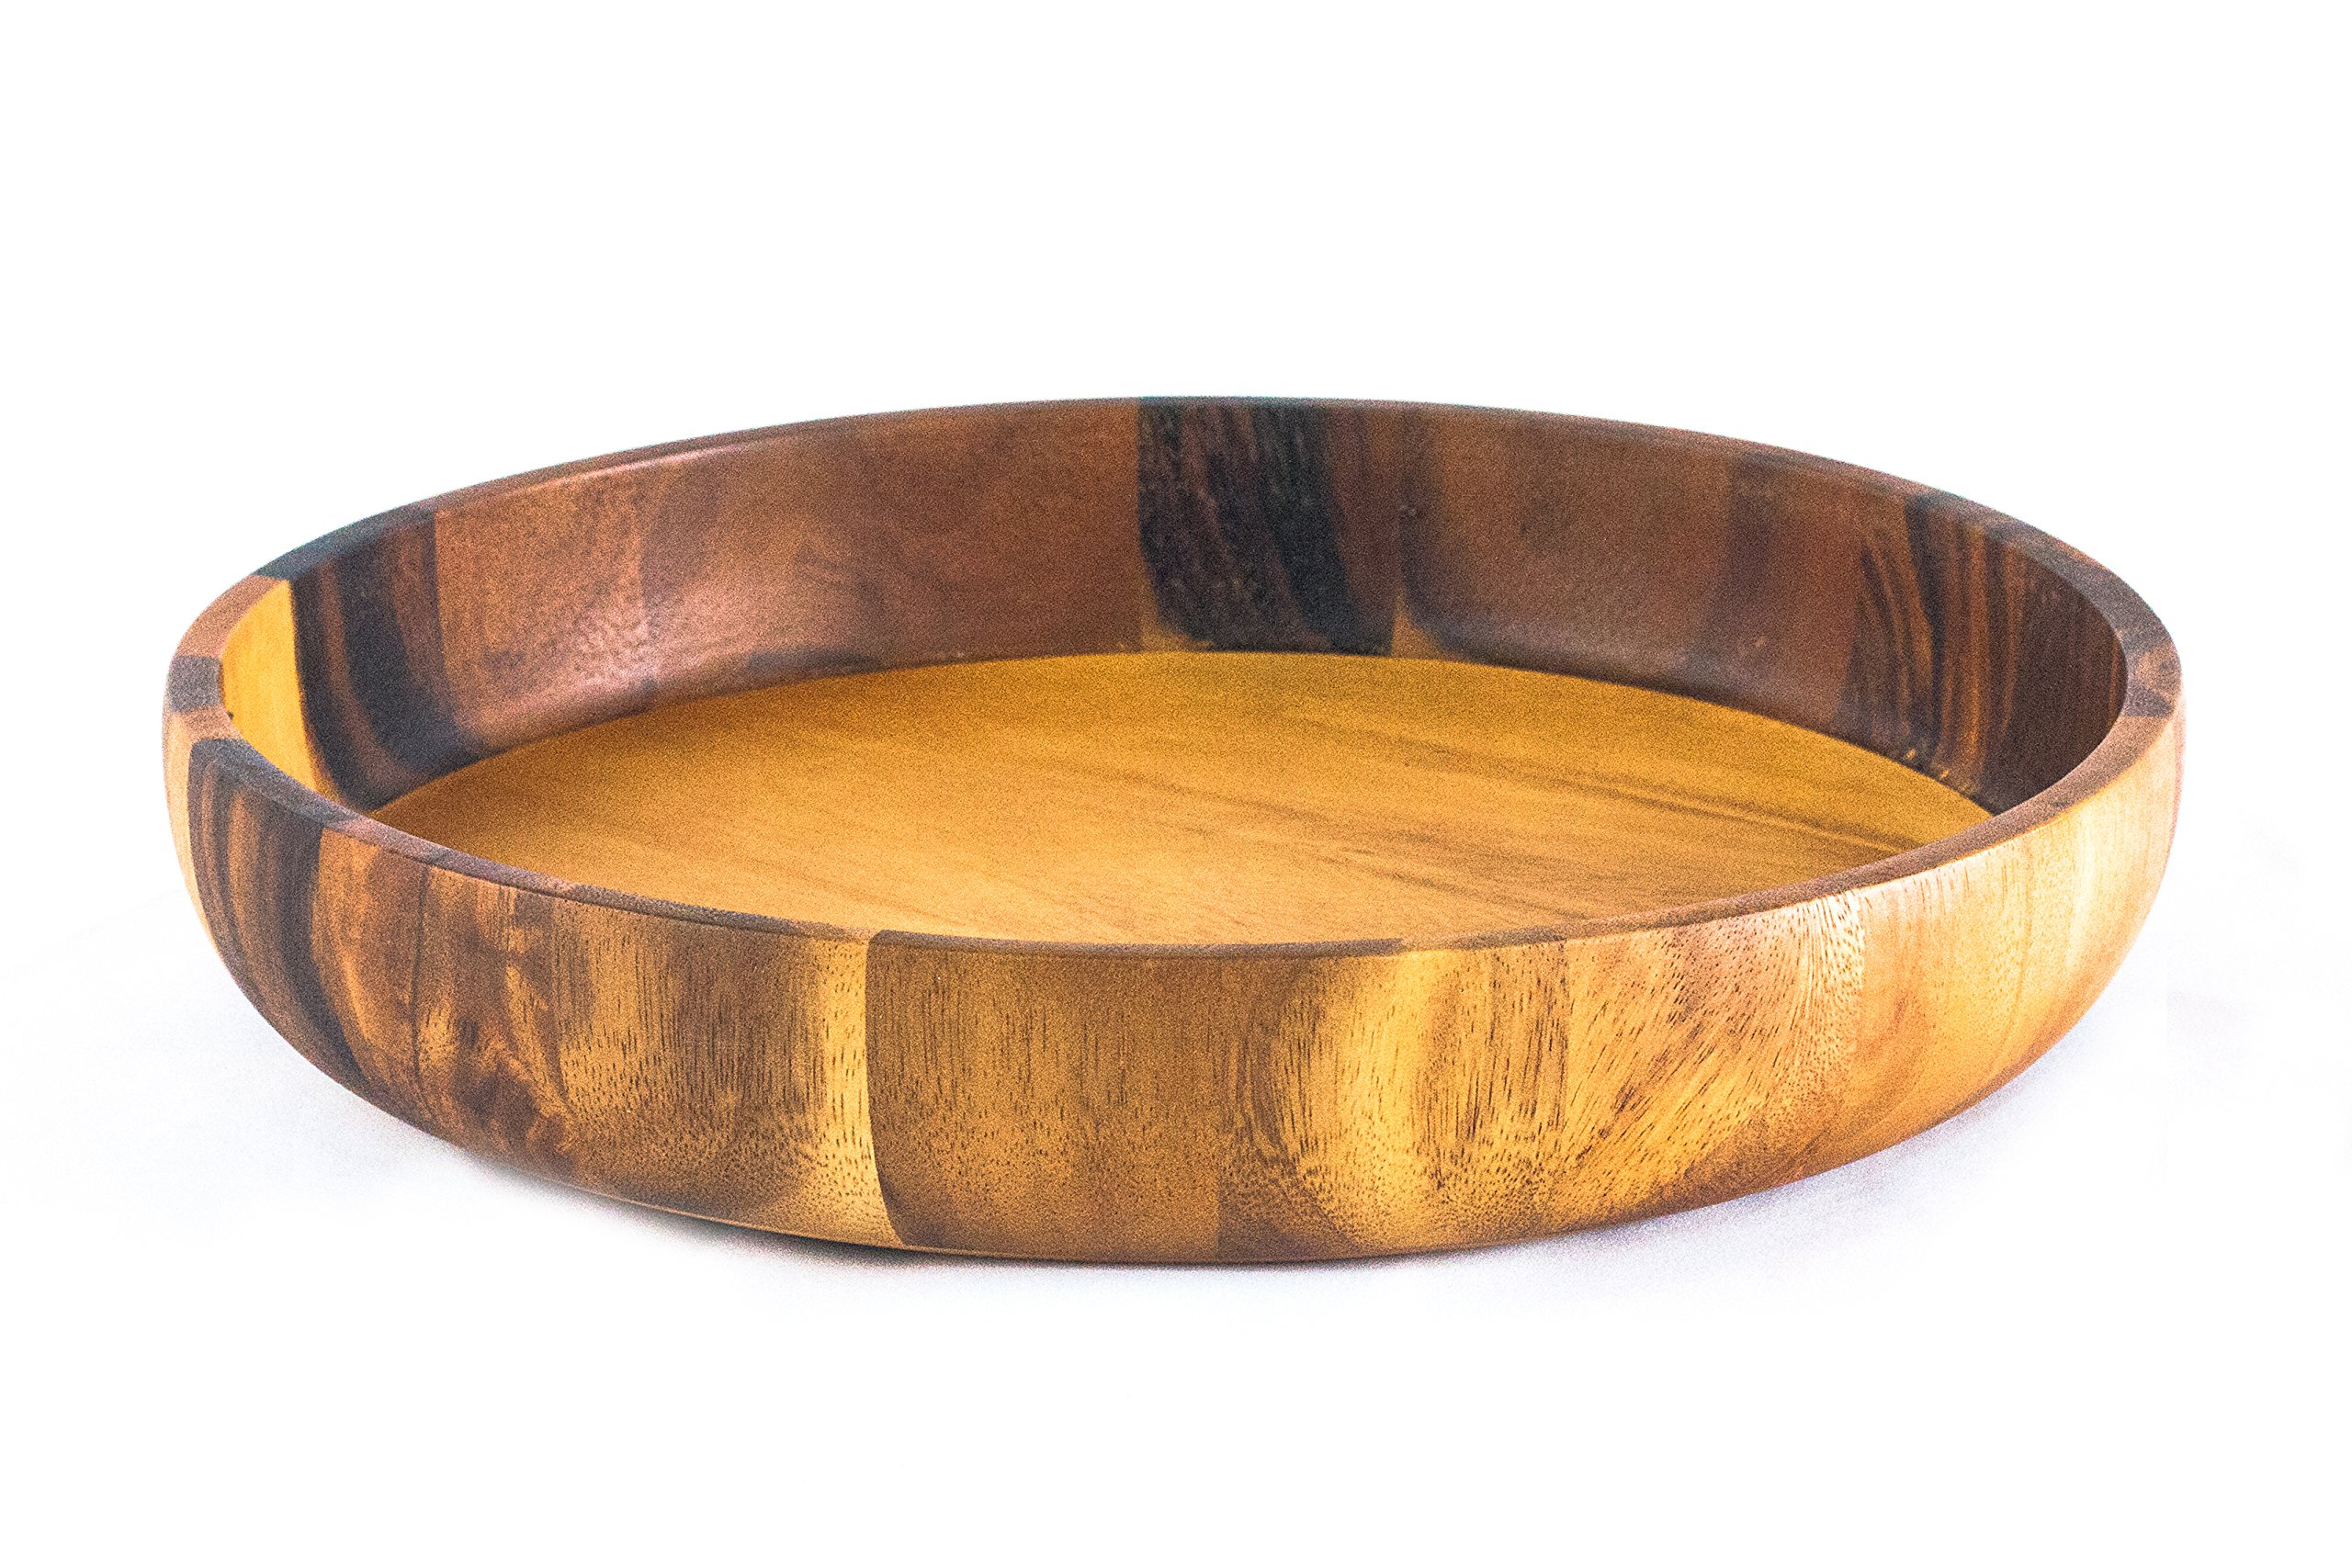 roro Handcarved Mango-Wood Creased Serving Plate with Bark Edges 12 L x 12 W